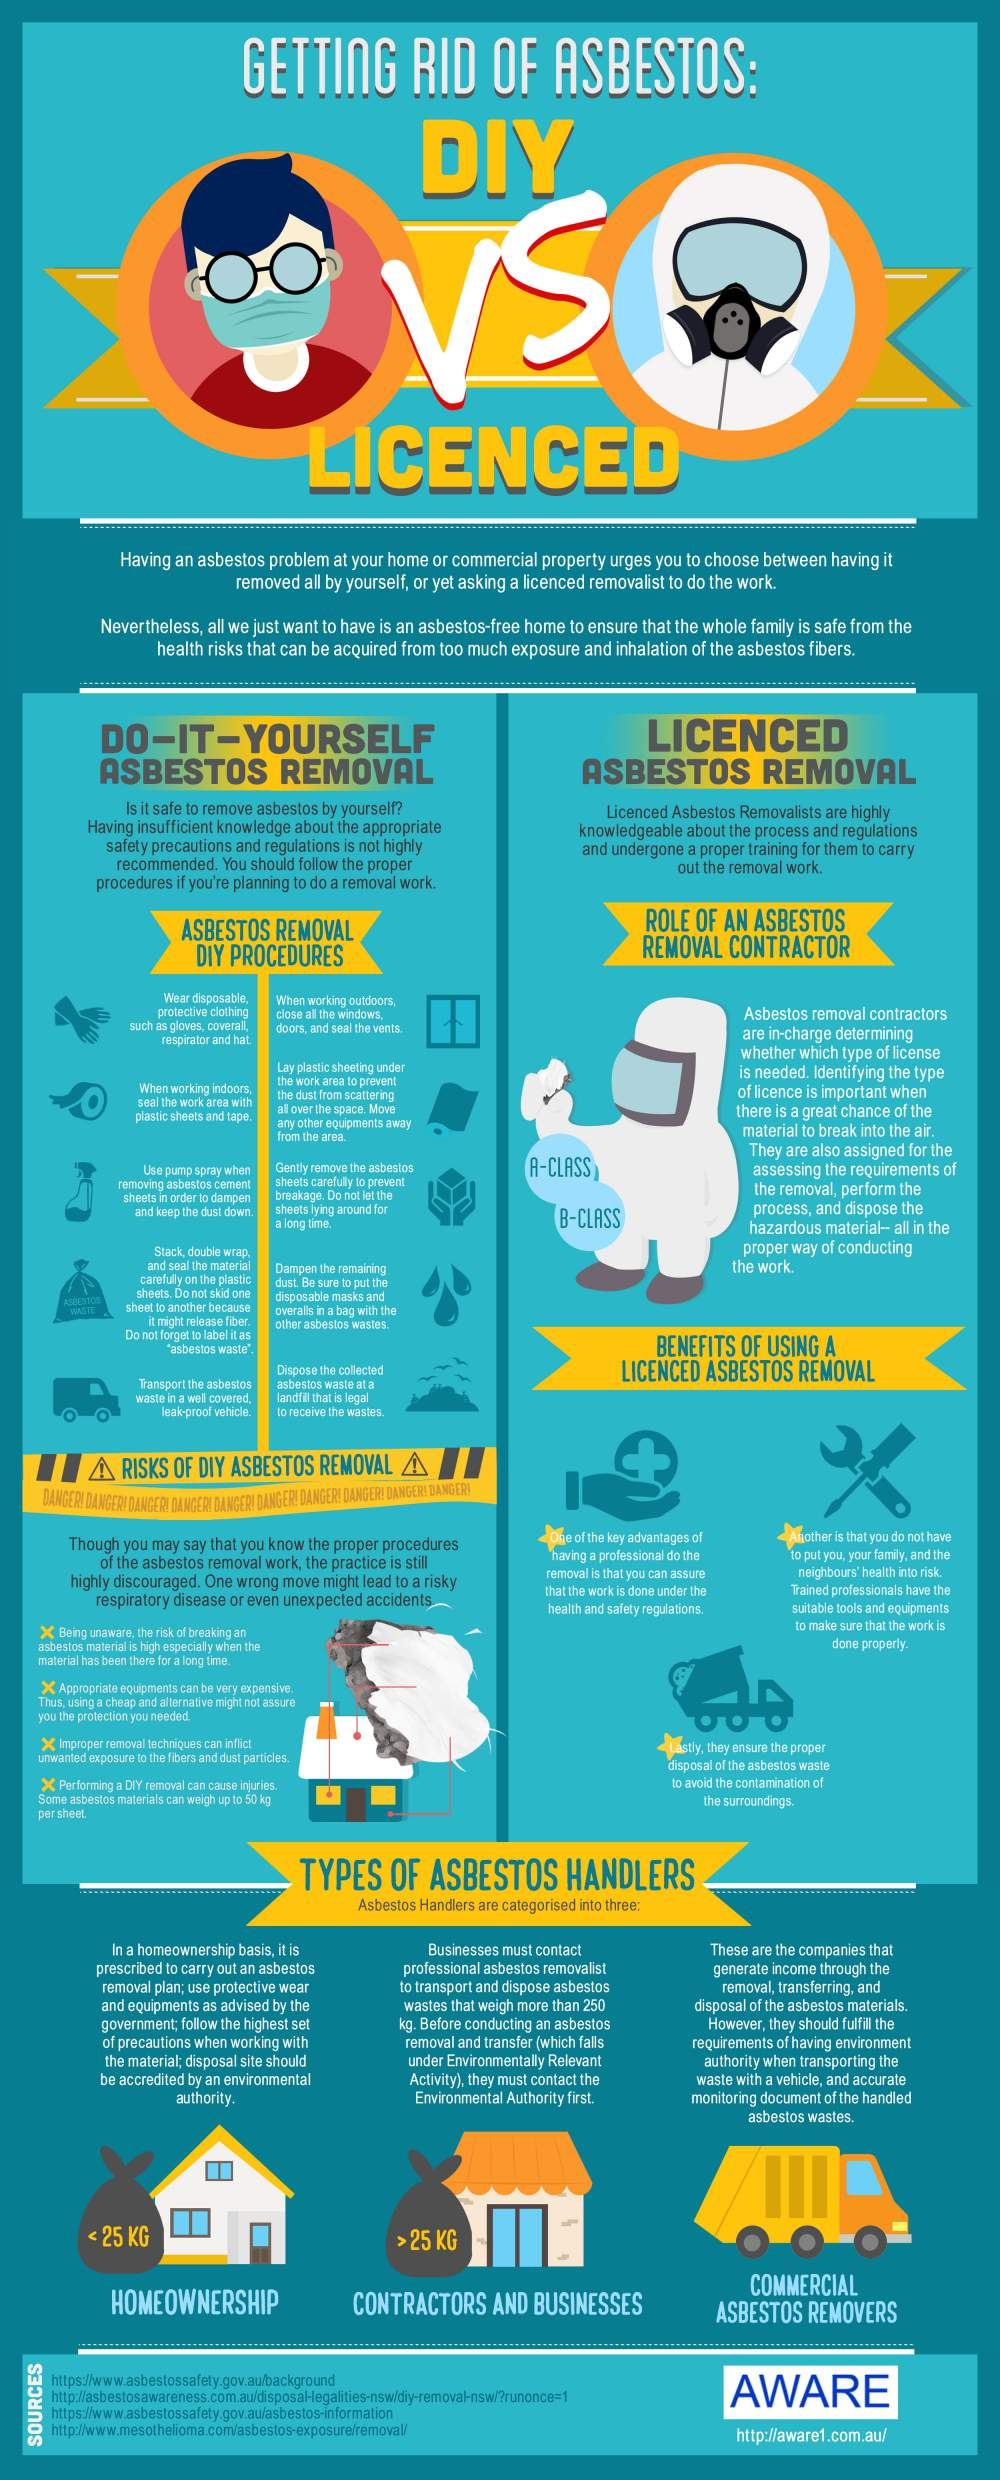 Getting rid of asbestos diy vs licenced infographic portal getting rid of asbestos solutioingenieria